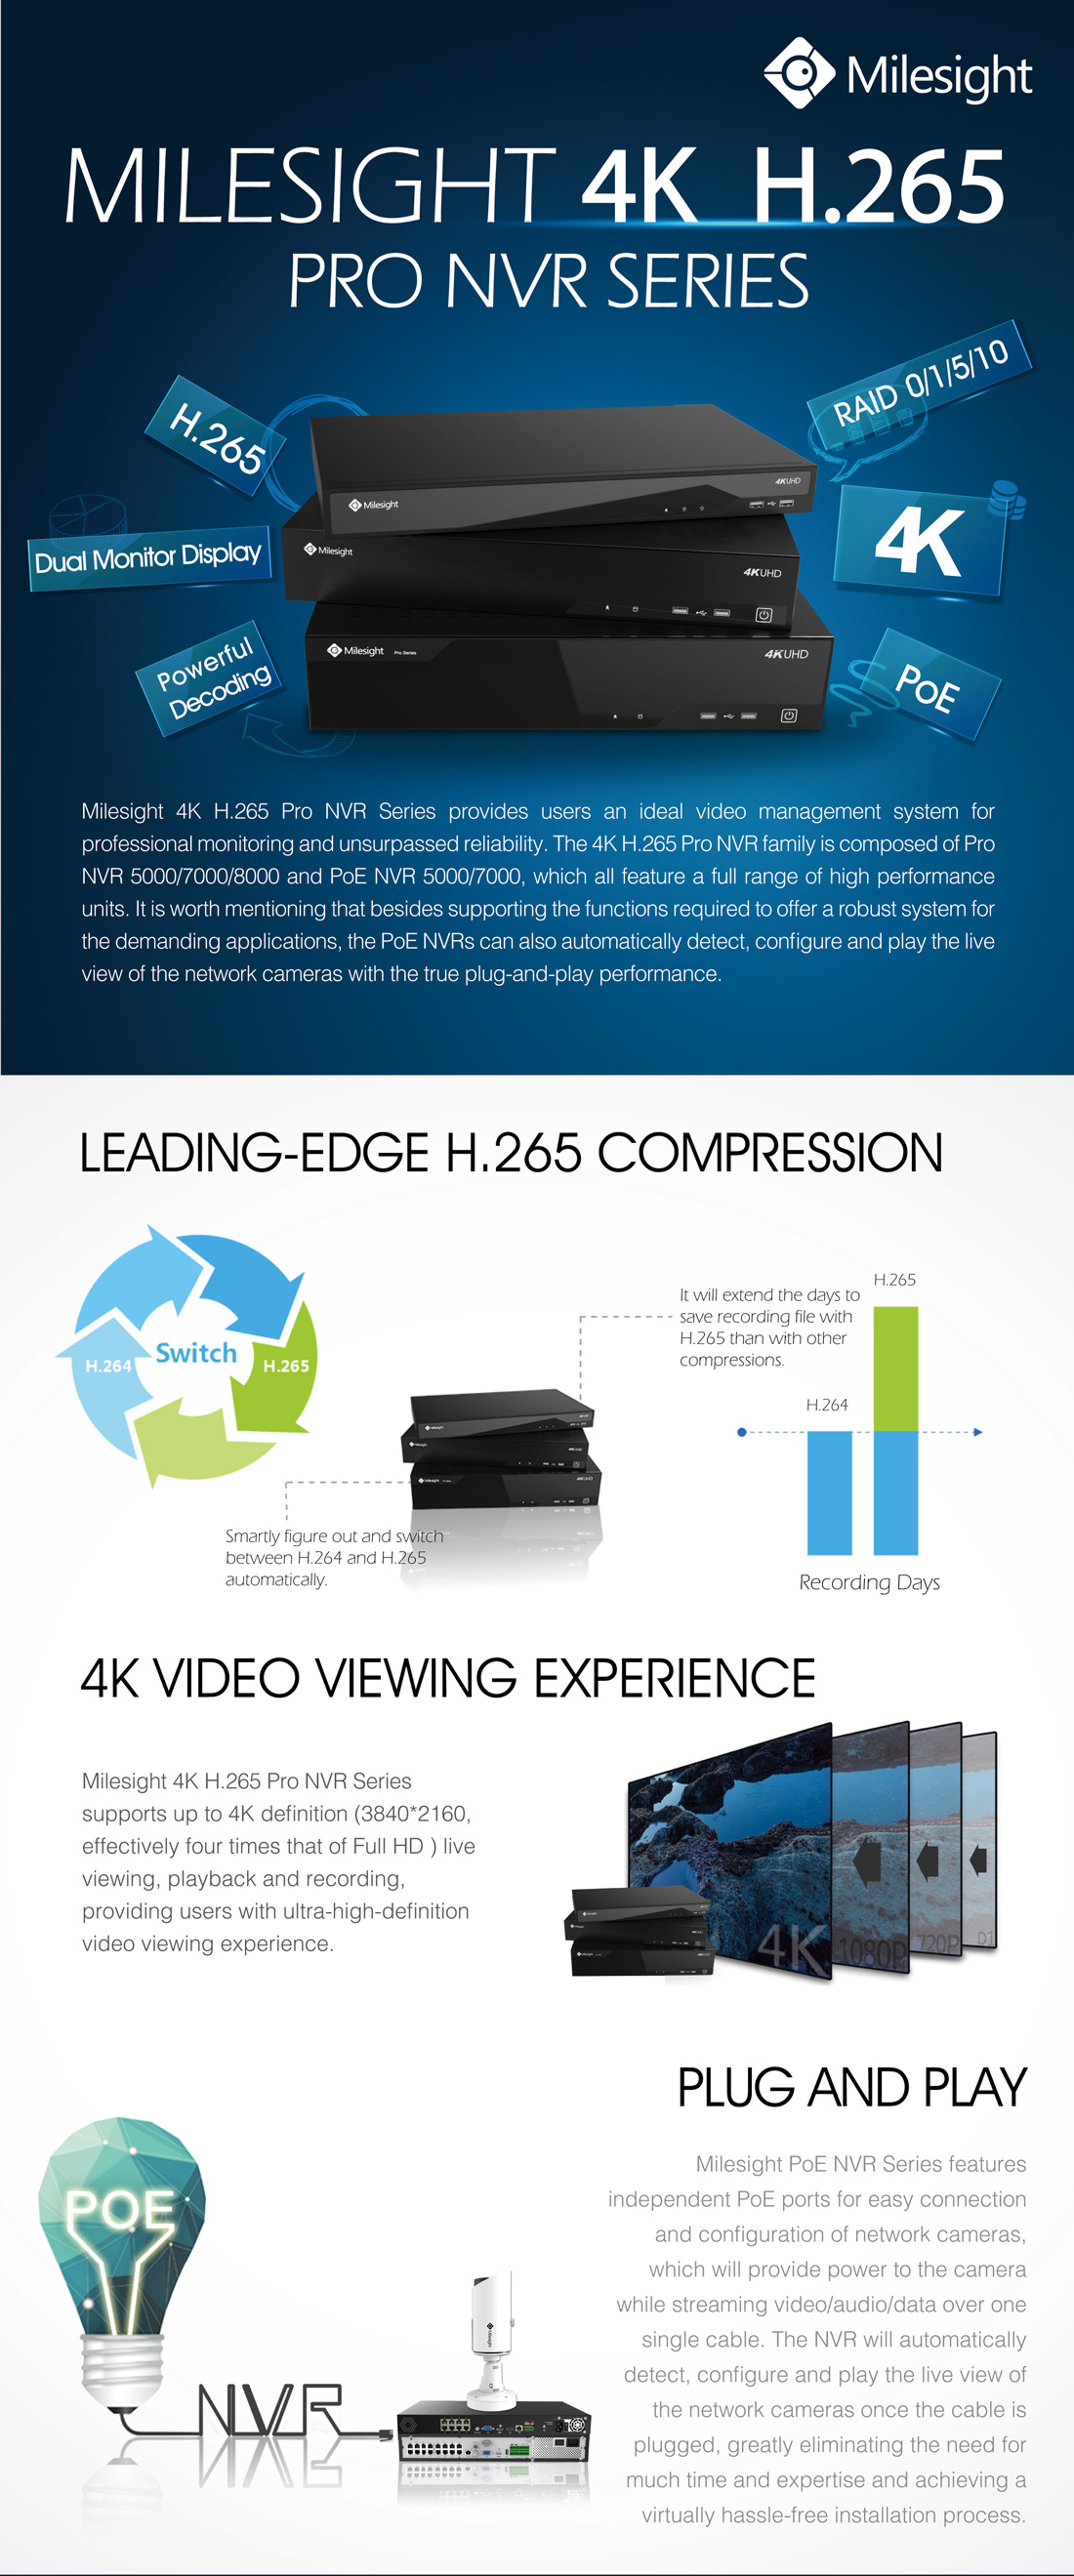 The highlights of Milesight 4k H.265 Pro NVR series including H.265 compression, 4K, plug and play, etc.